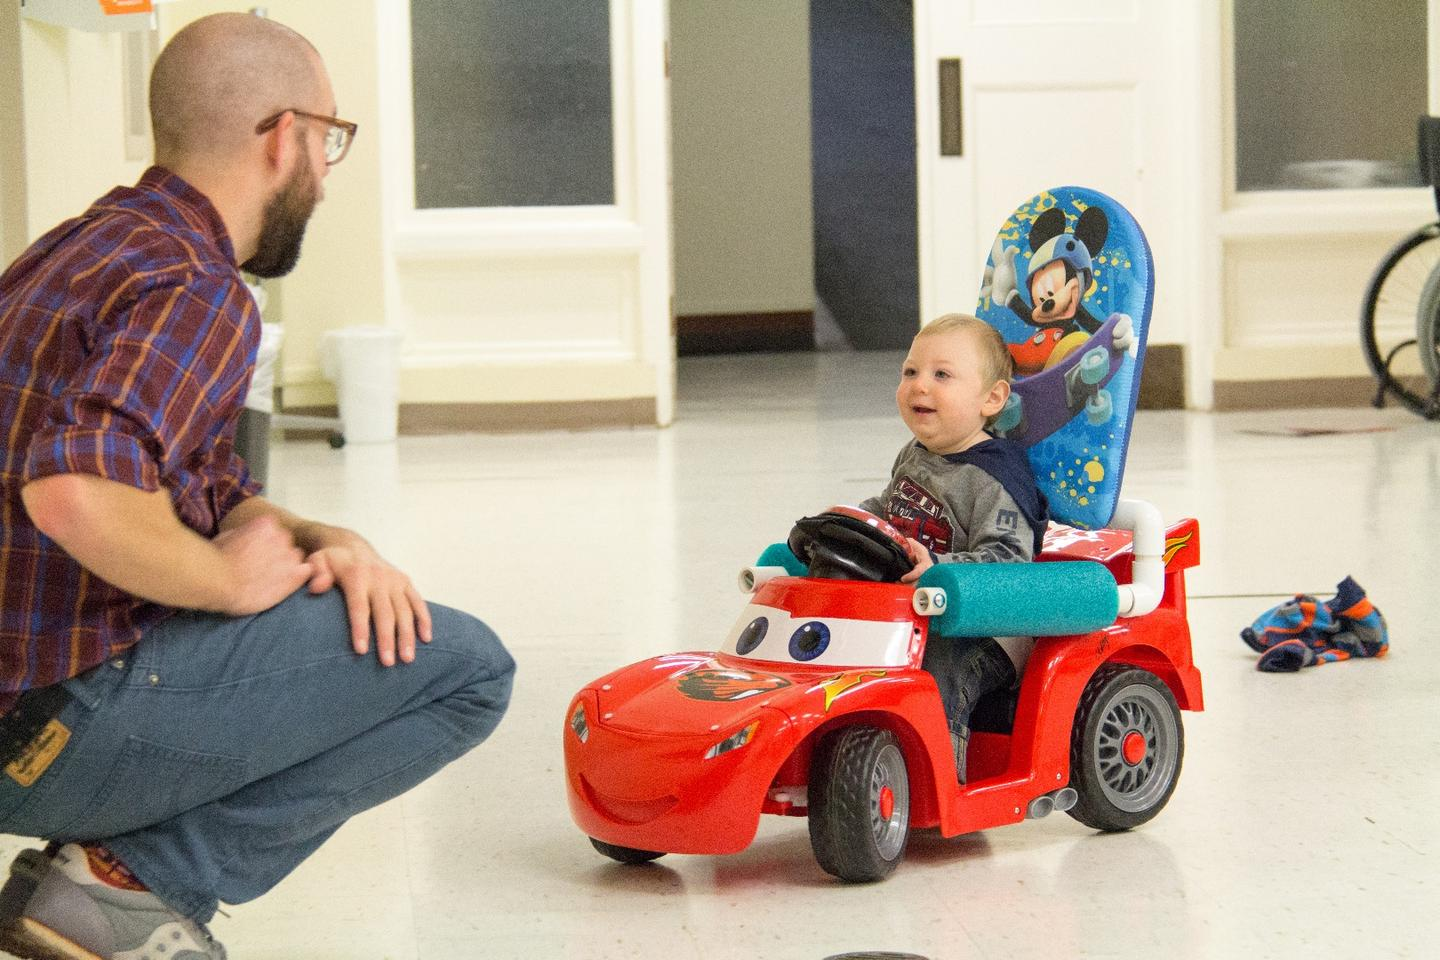 Researcher Sam Logan, leader of the Go Baby Go program at Oregon State University, with a youngster driving a Go Baby Go modified toy car